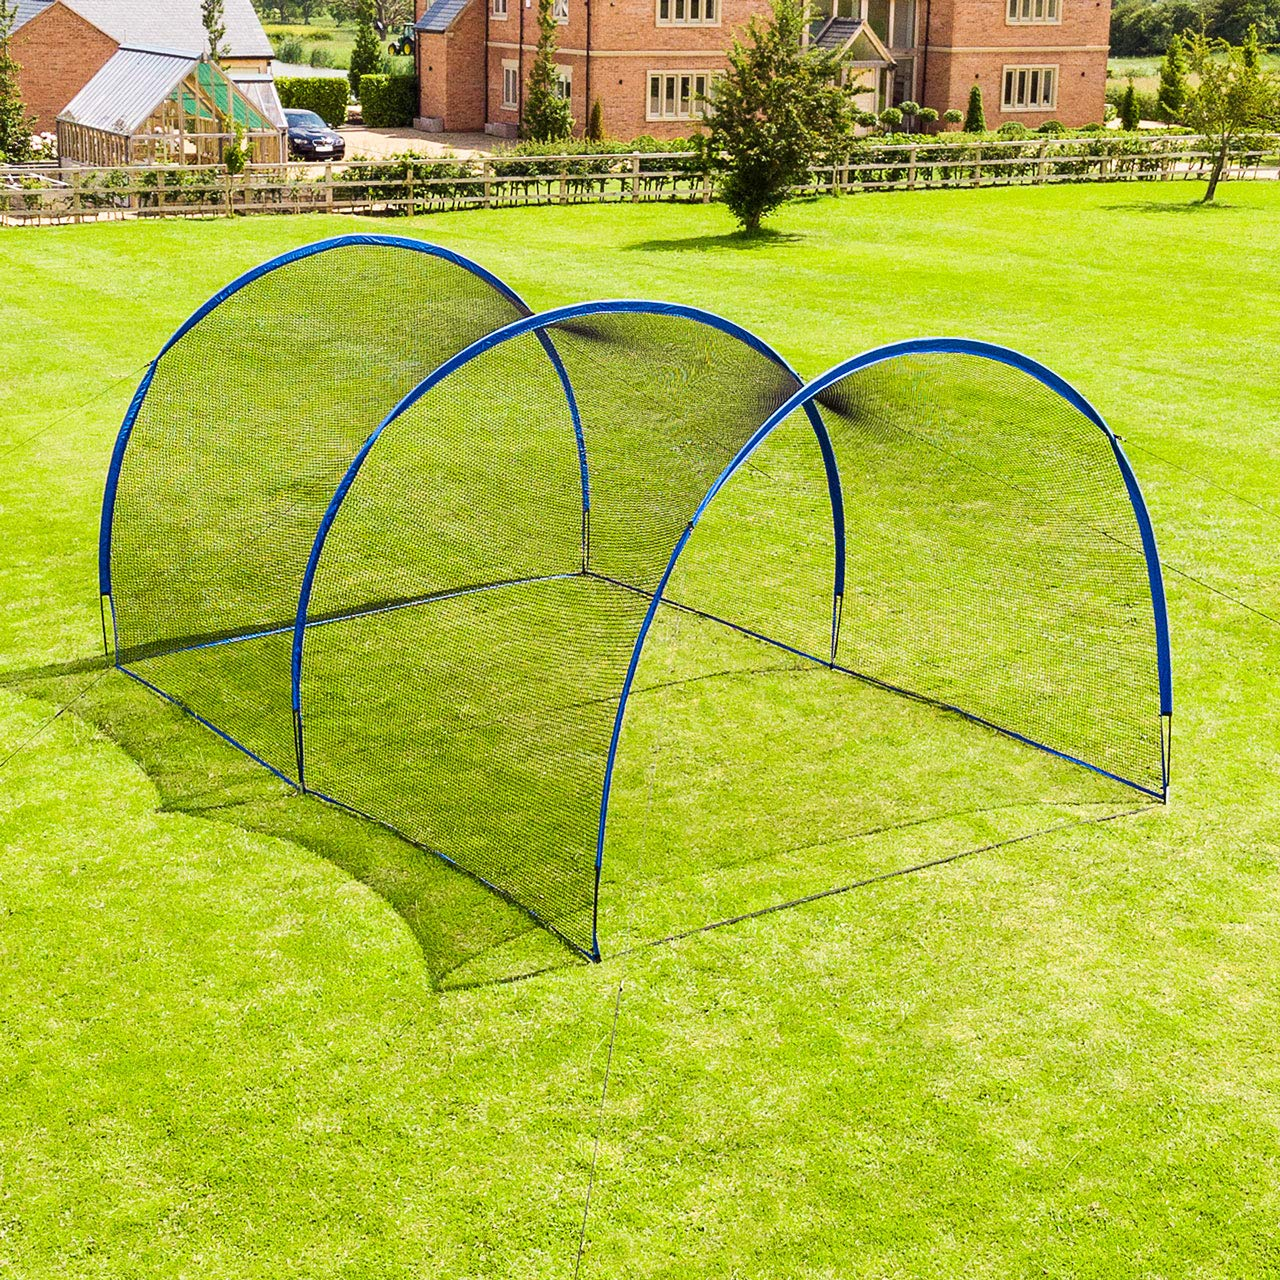 Fortress Pop-Up Baseball Batting Cage - Backyard Batting & Pitching Practice [20ft Or 40ft] (20ft Batting Cage) by Fortress